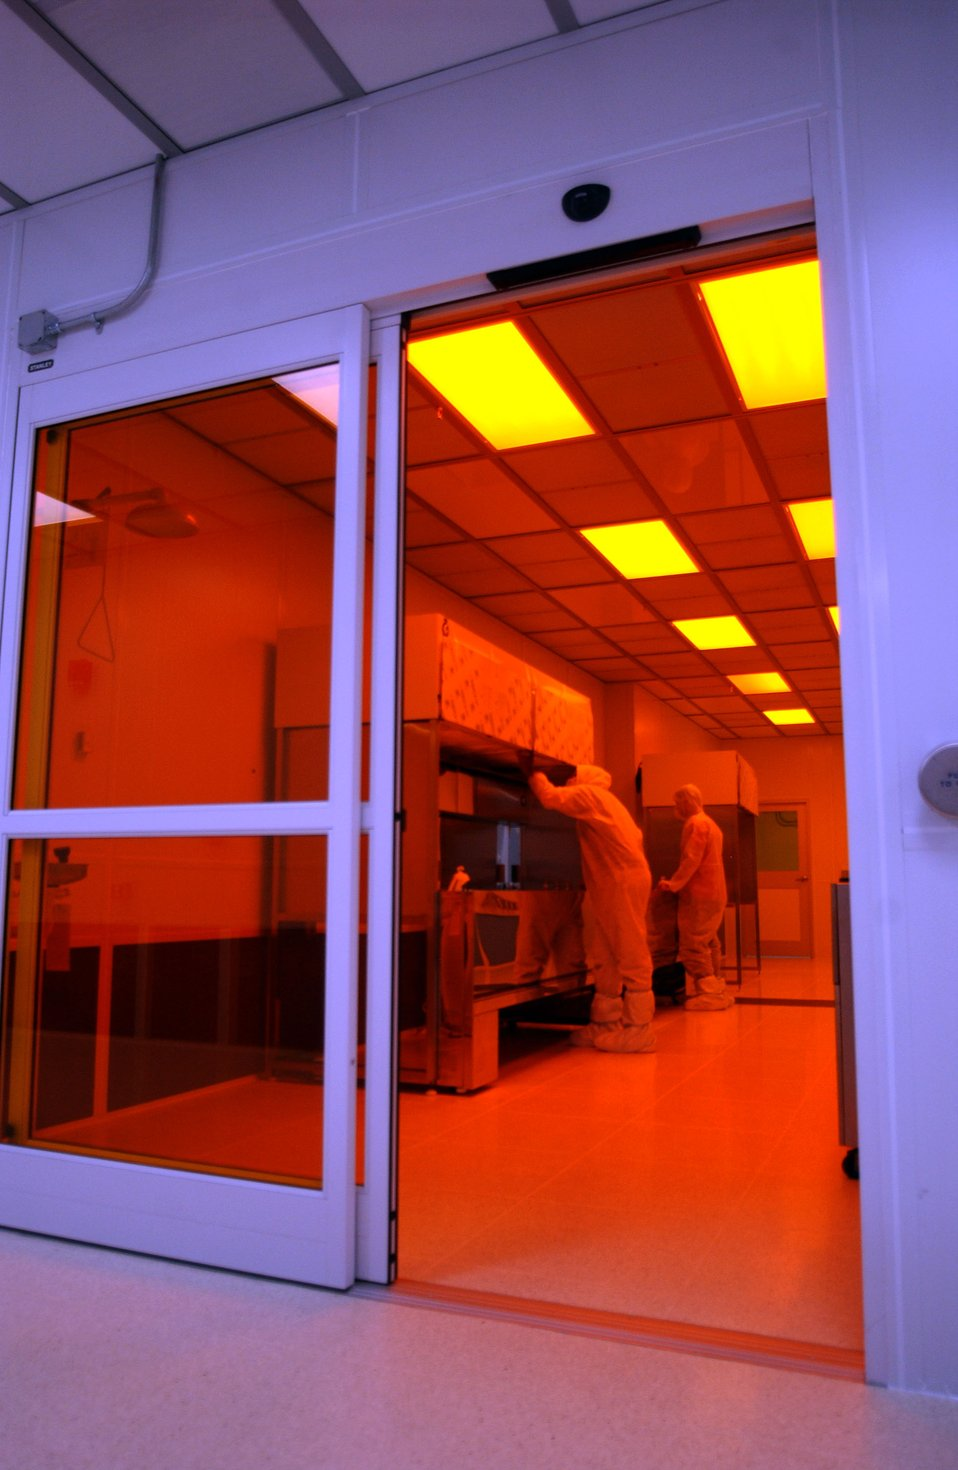 Clean Room at Center for Nanophase Materials Sciences